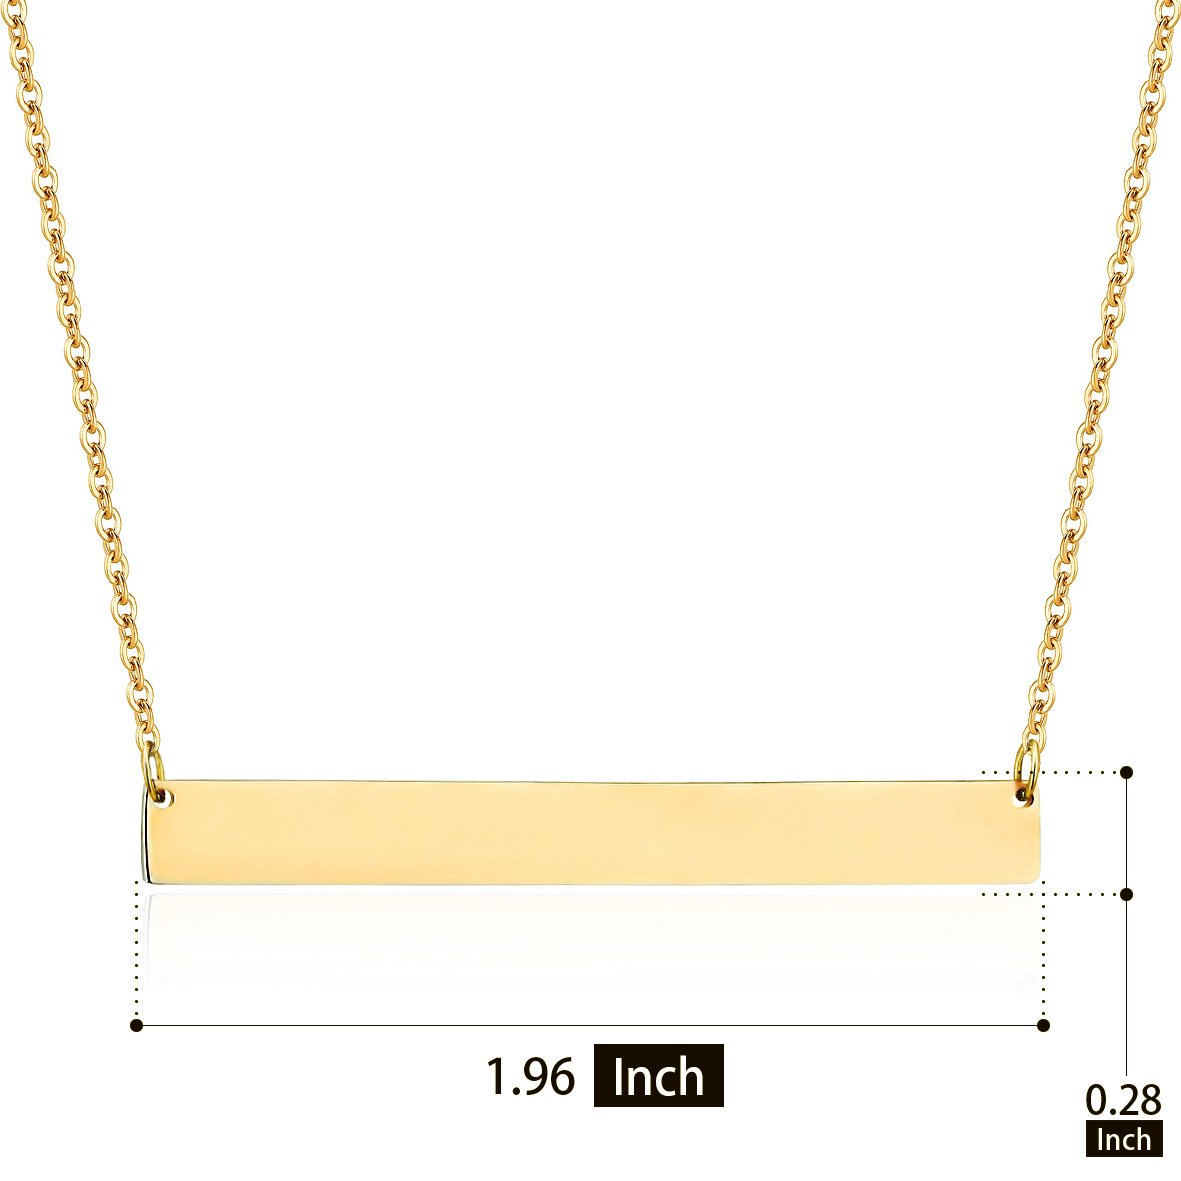 Lazycat Stainless Steel 18K Plated Bar Necklace with Engravable Bar Pendant (Gold) by Lazycat (Image #2)